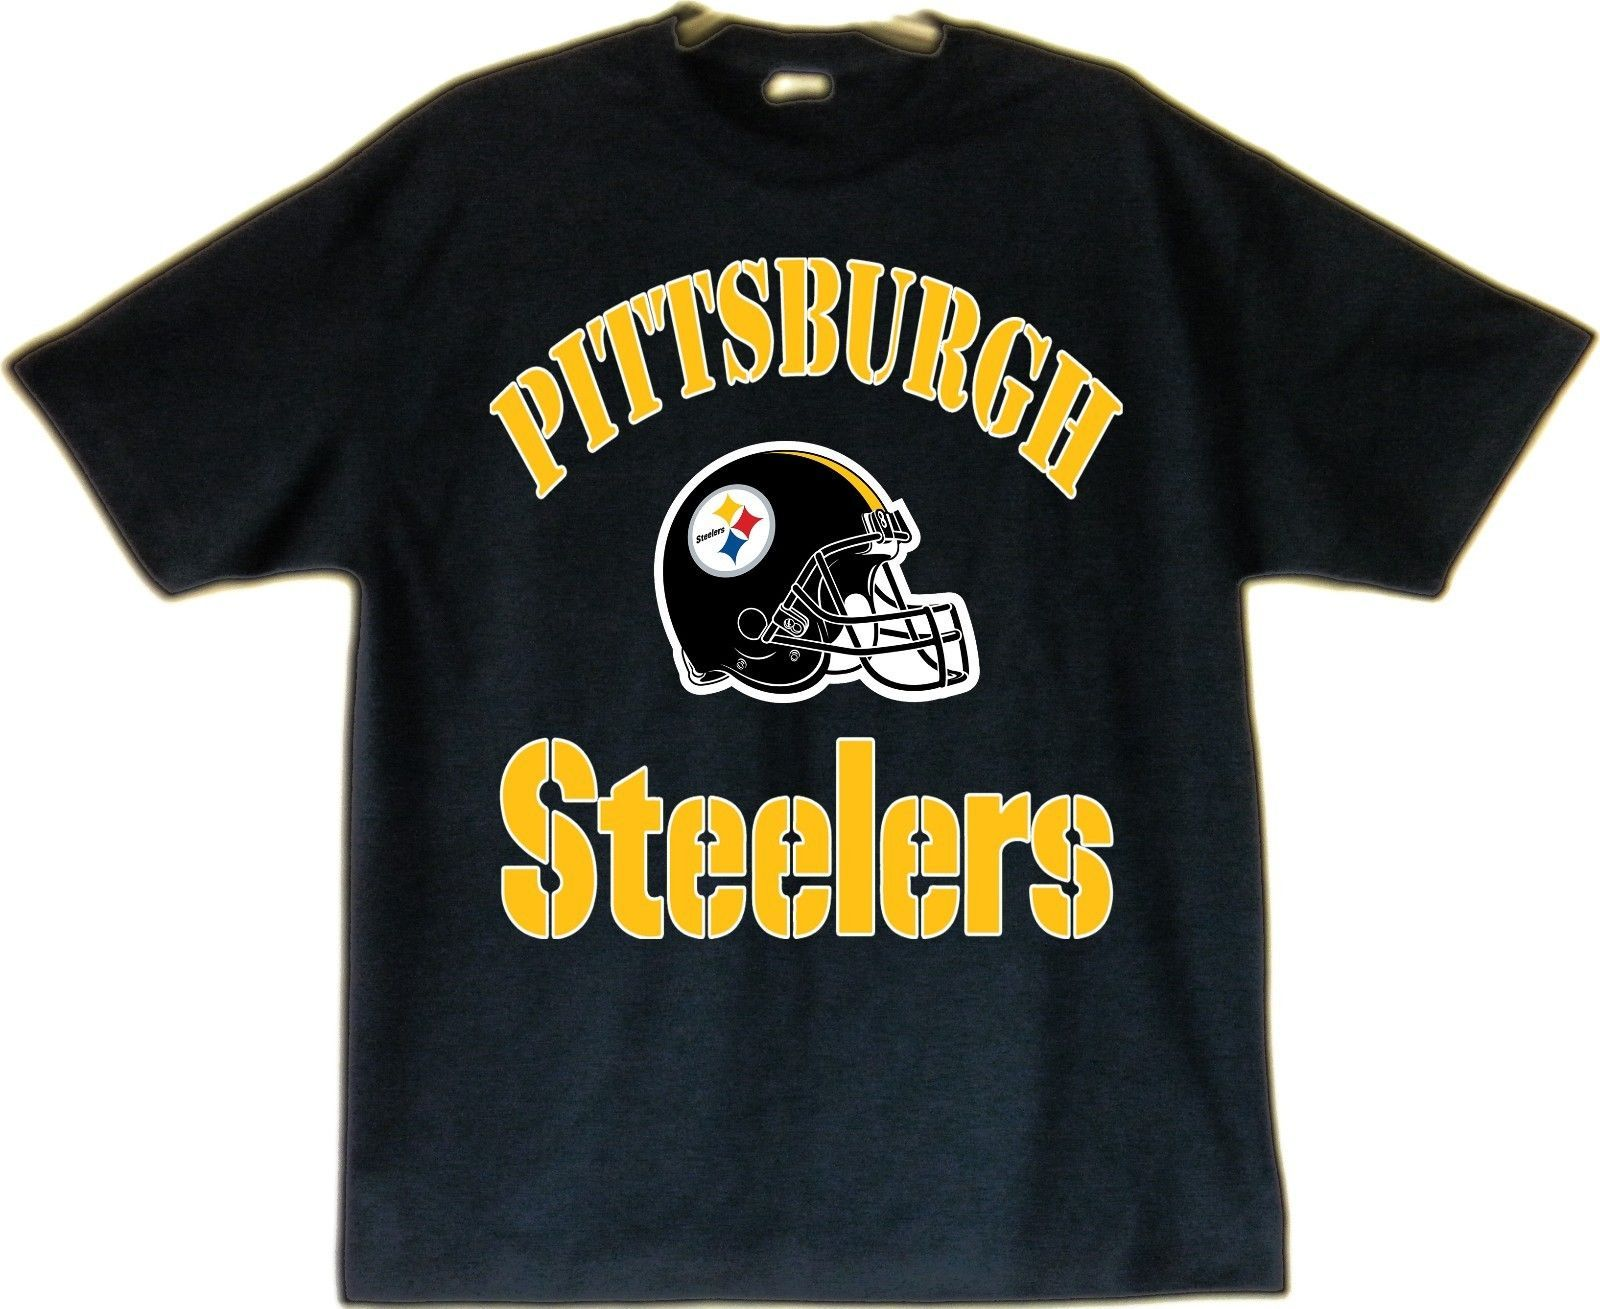 Primary image for Pittsburgh Steelers Image T-Shirt Black (S thru 4XL)